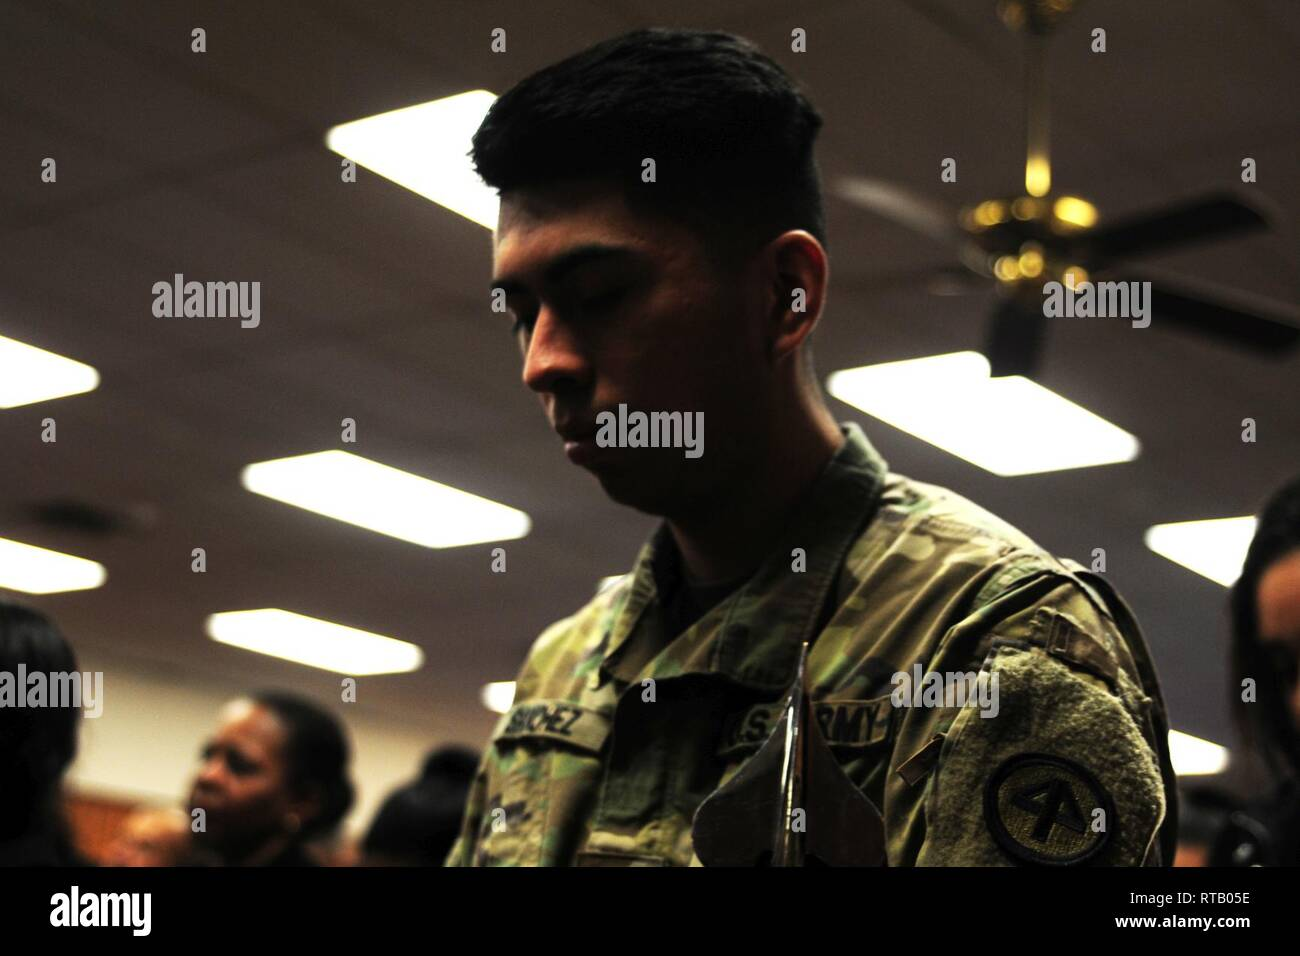 Spc. Anthony Sanchez reflects upon his upcoming deployment. Soldiers from Hotel Company, 250th Brigade Support Battalion, said farewell to family, friends and New Jersey National Guard leadership at a farewell ceremony Feb. 5, 2019 at the Veterans of Foreign Wars Post 5084 in Elmwood Park, New Jersey. The Teaneck-based Soldiers will deploy to the Horn of Africa in support of Operation Enduring Freedom. - Stock Image